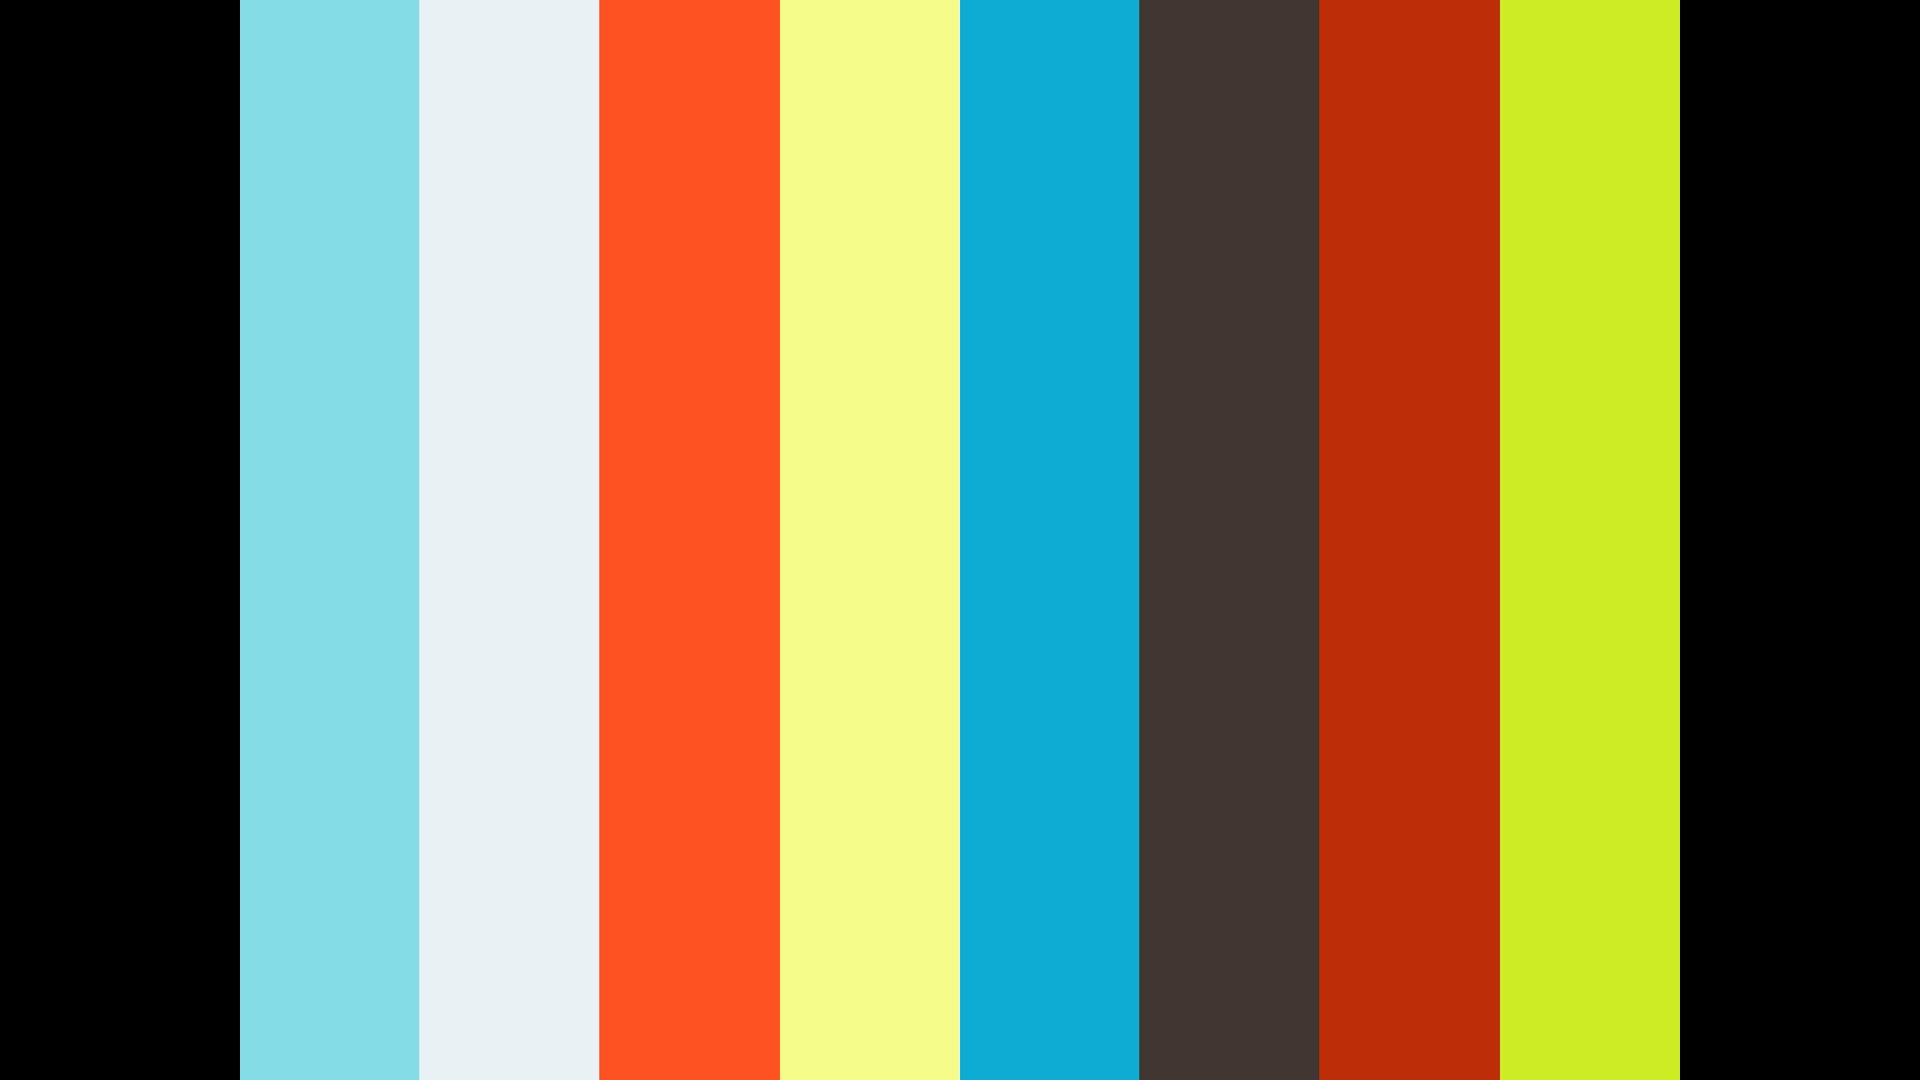 Zeeman's wedding dress campaign by chantal spieard